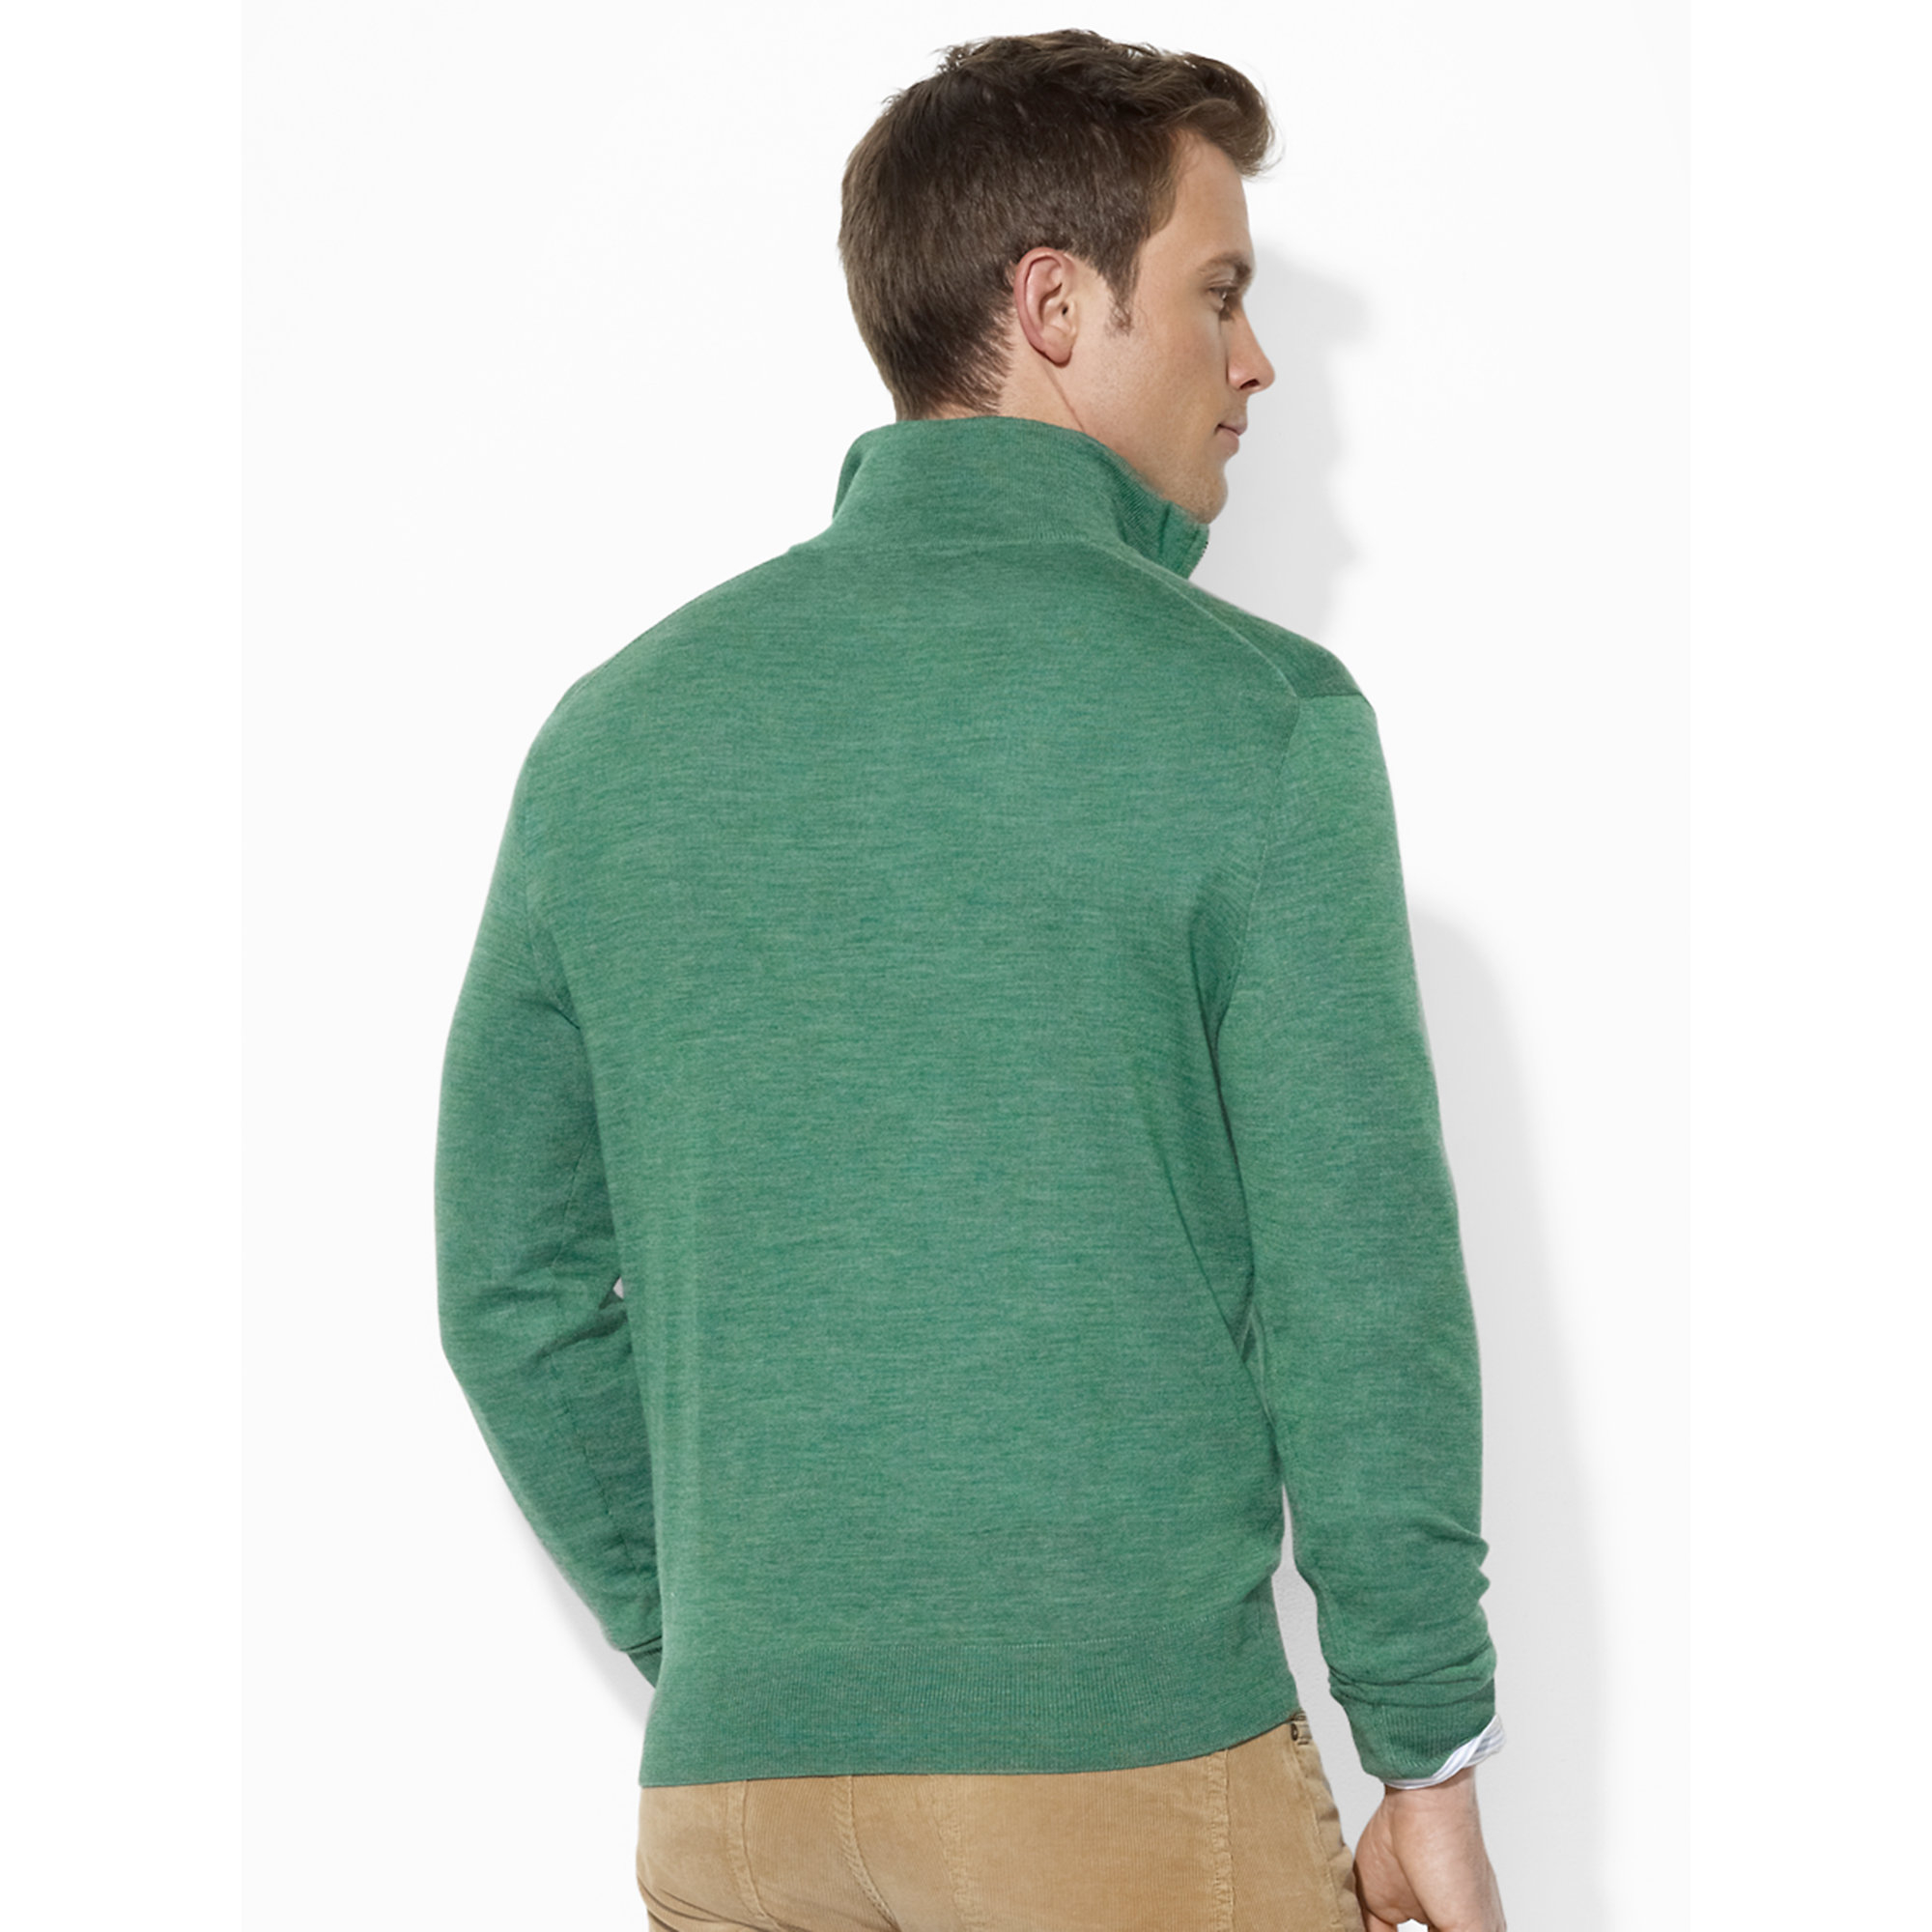 Green Merino Wool Turtleneck. Sale $ Orig $